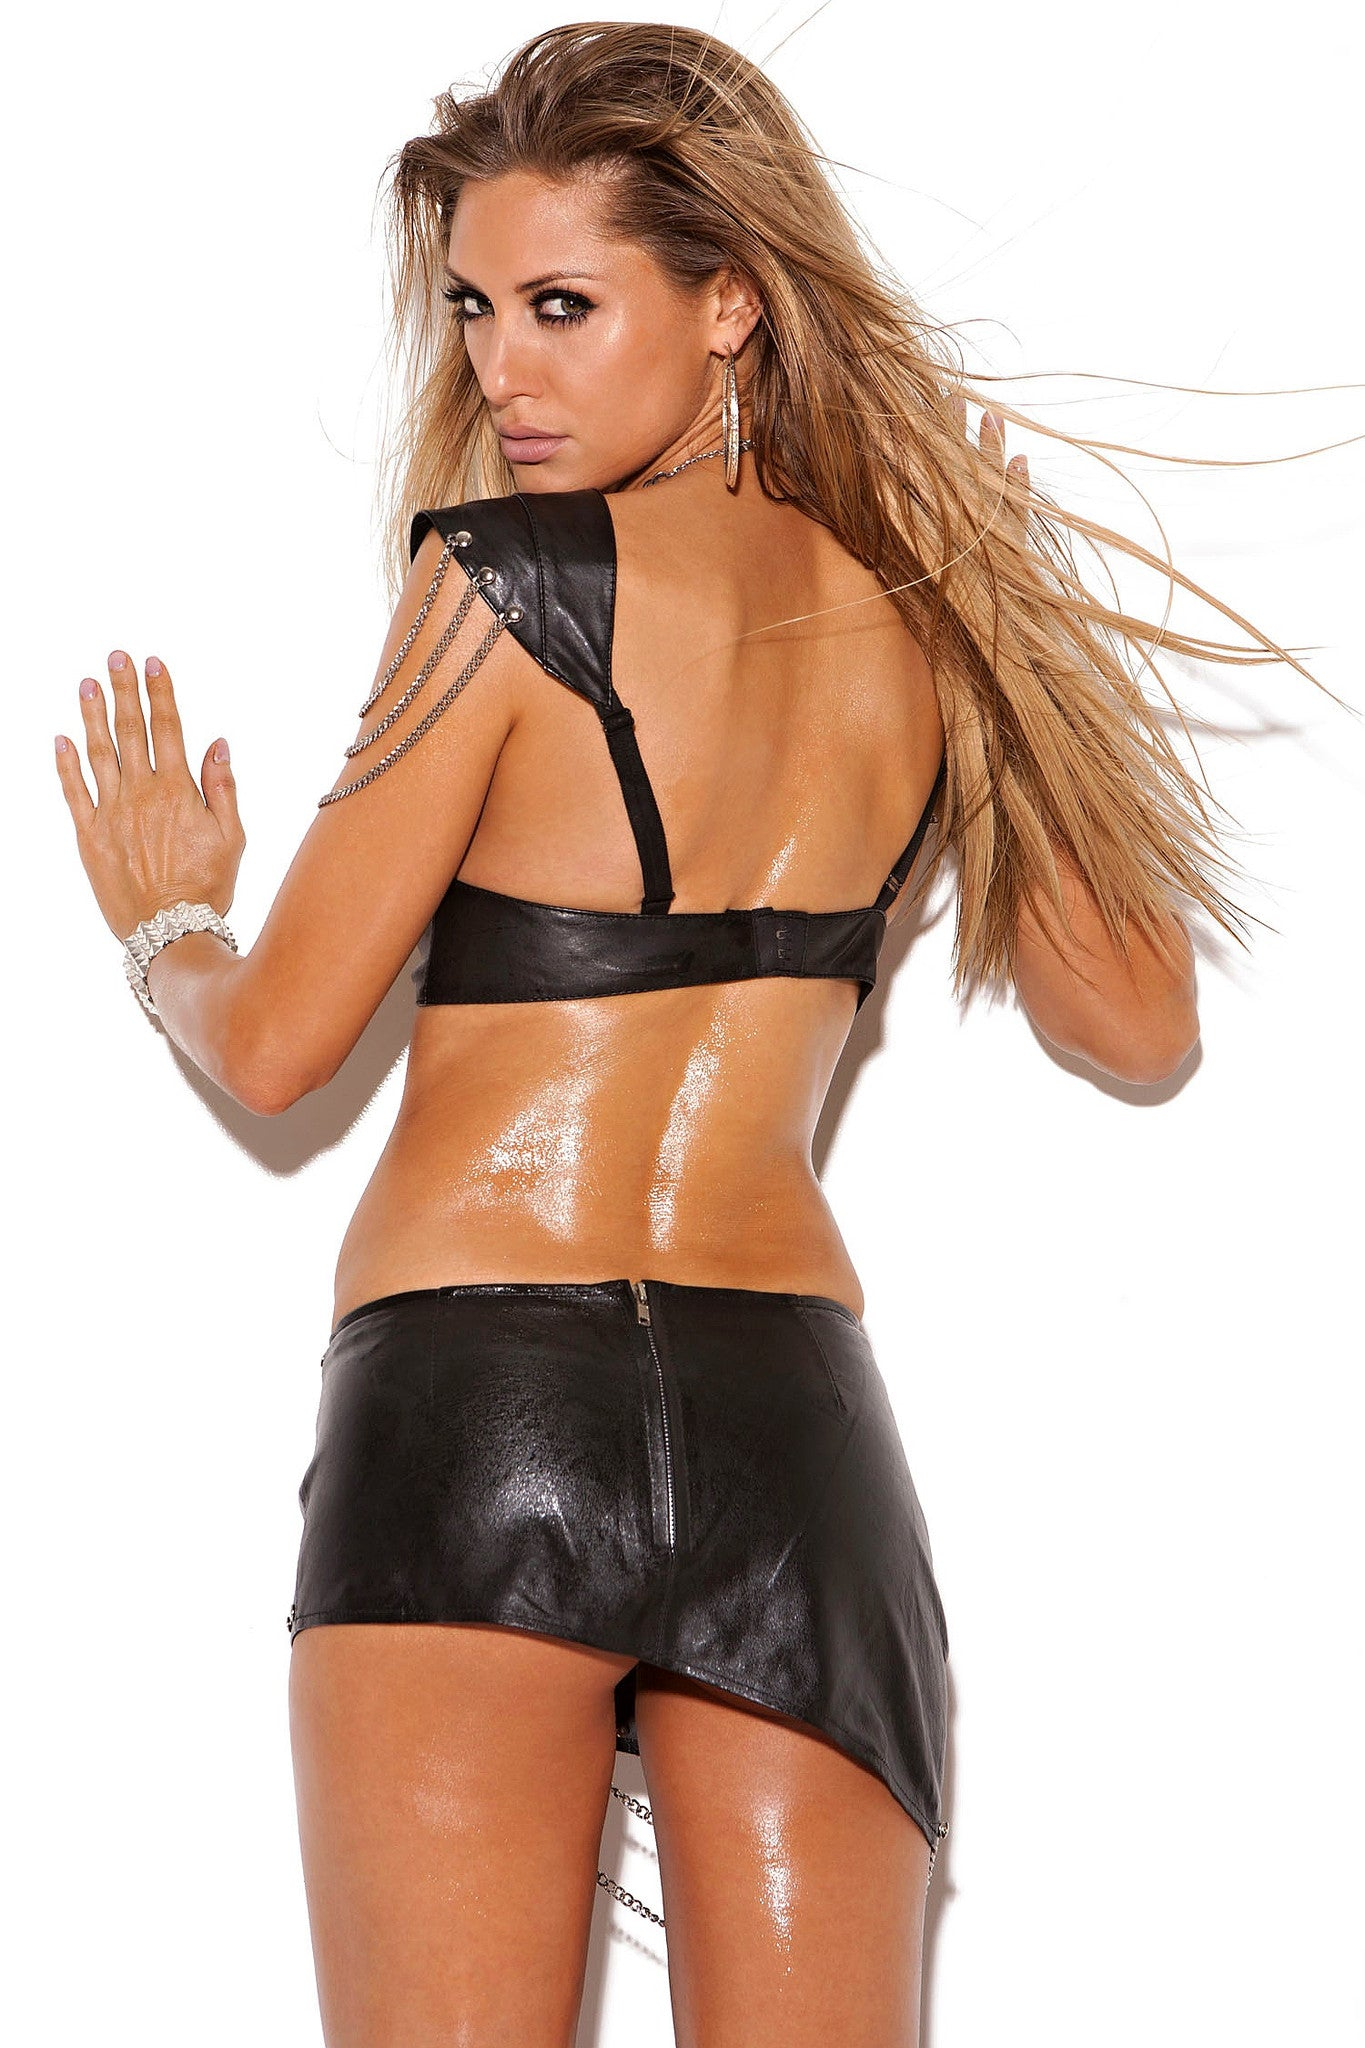 L6822 Leather mini skirt - Sexylingerieland  - 2